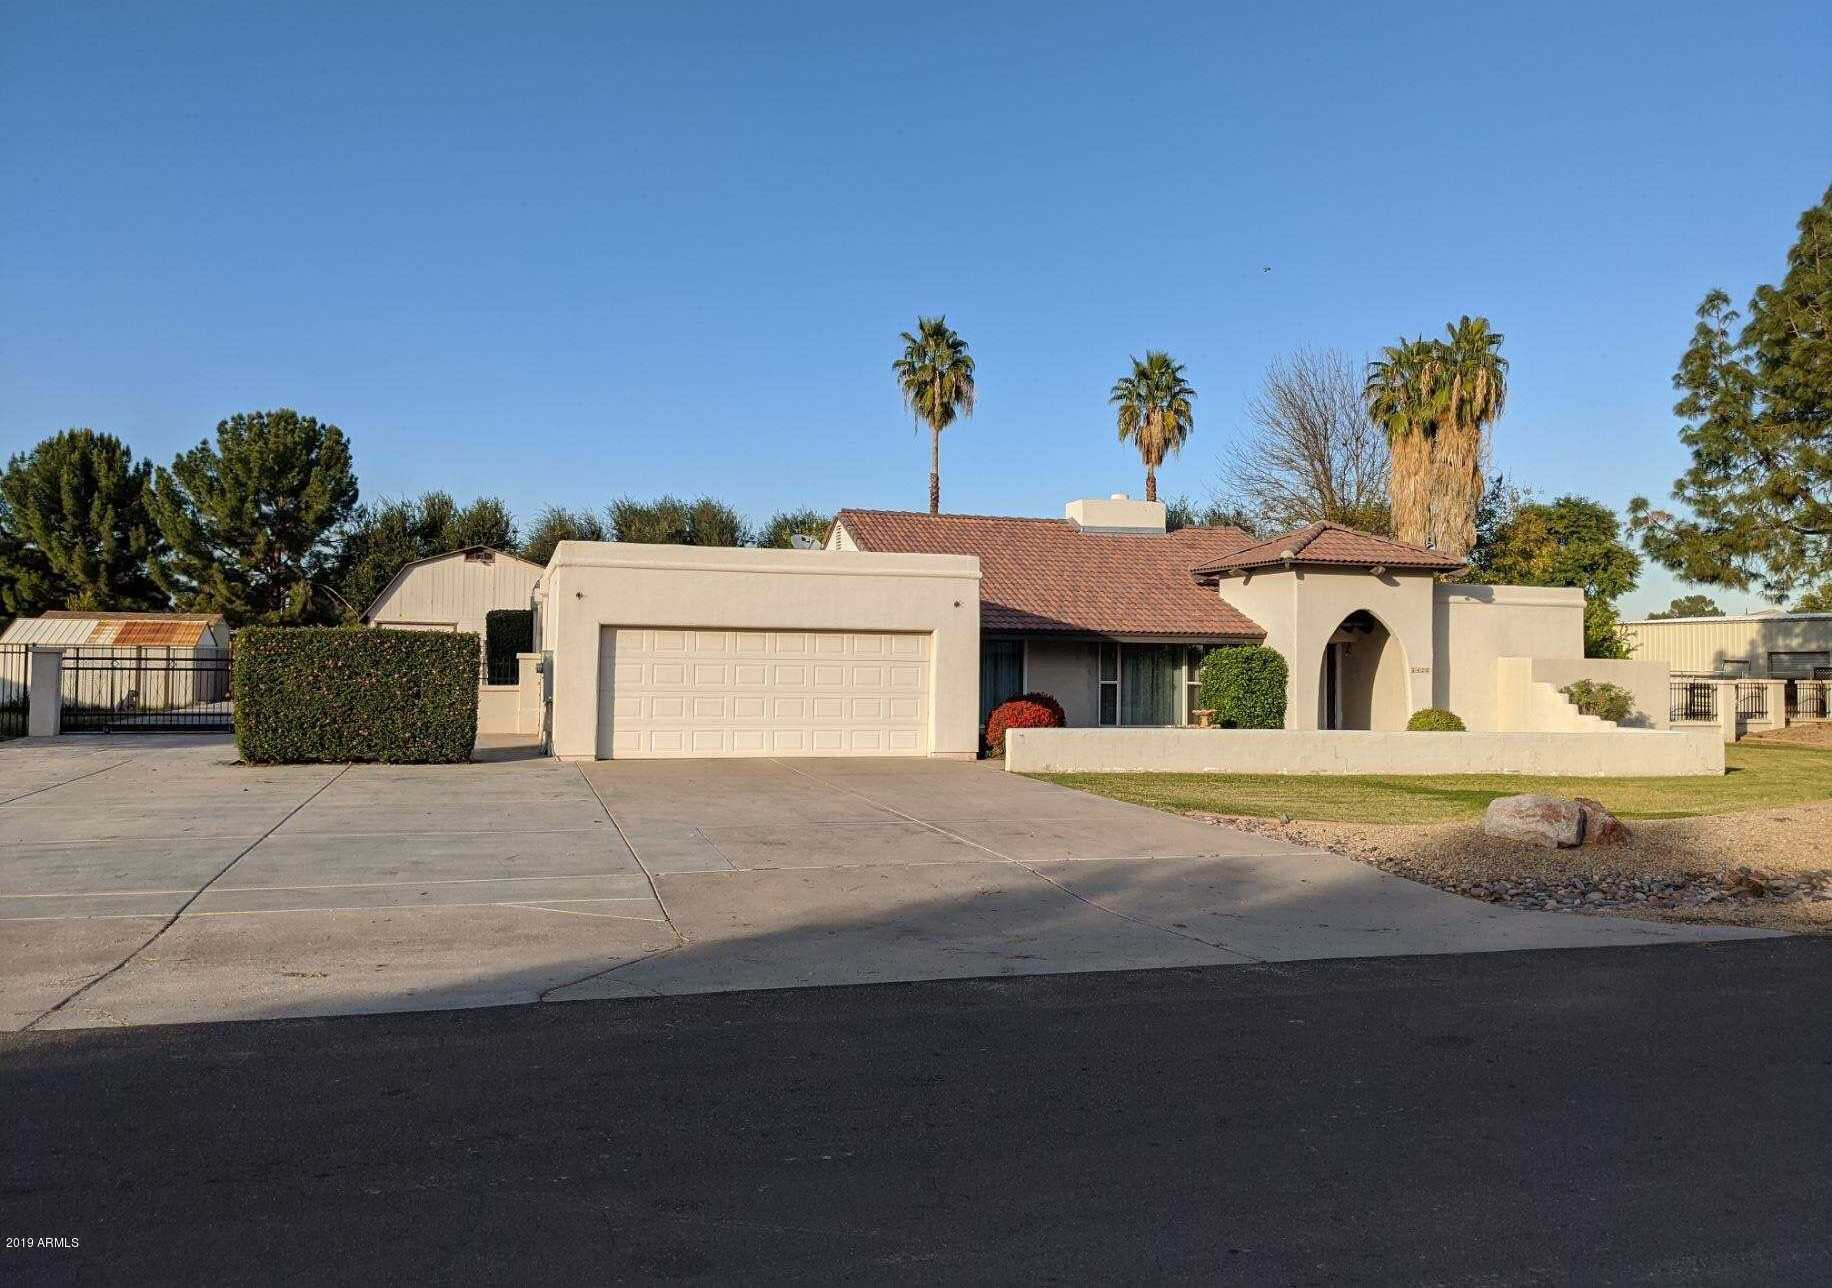 $475,000 - 3Br/2Ba - Home for Sale in Double T Ranch Lot 1-15, Glendale